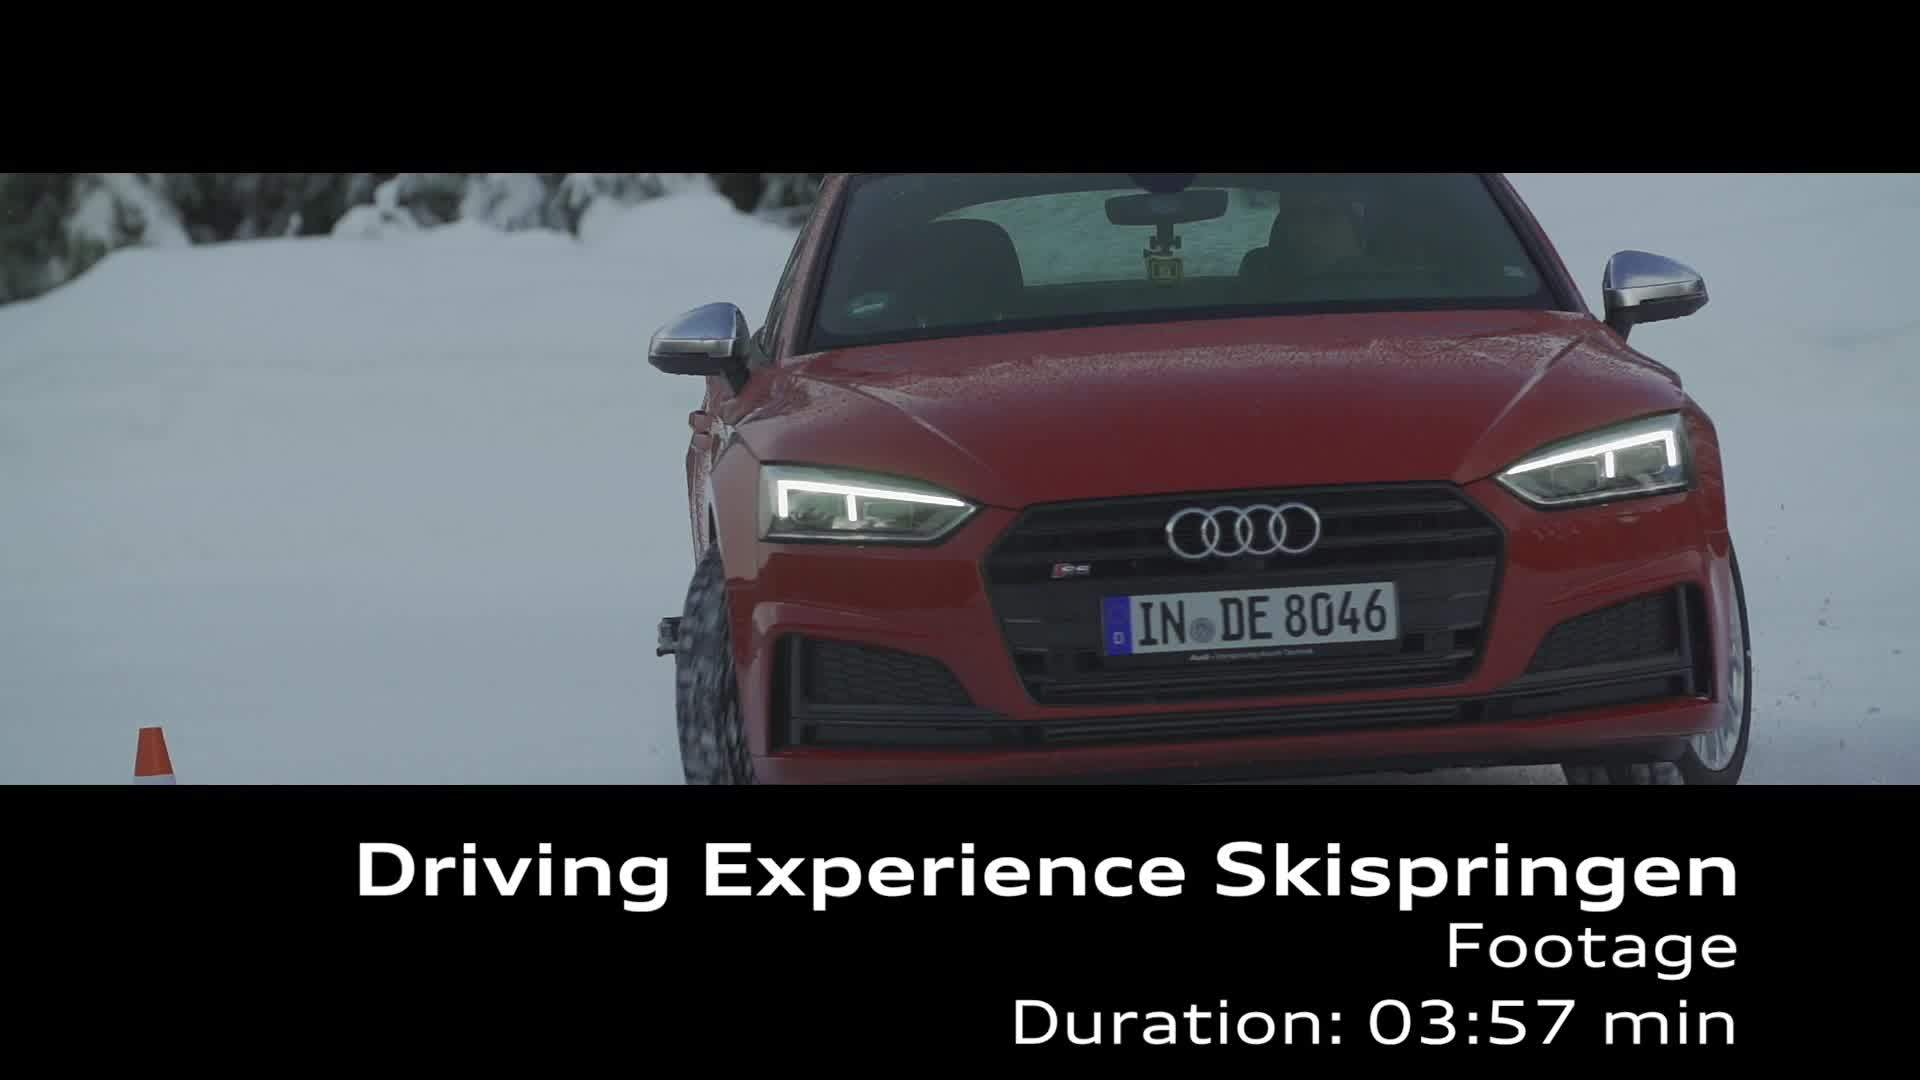 Ski athletes at Audi driving experience Footage